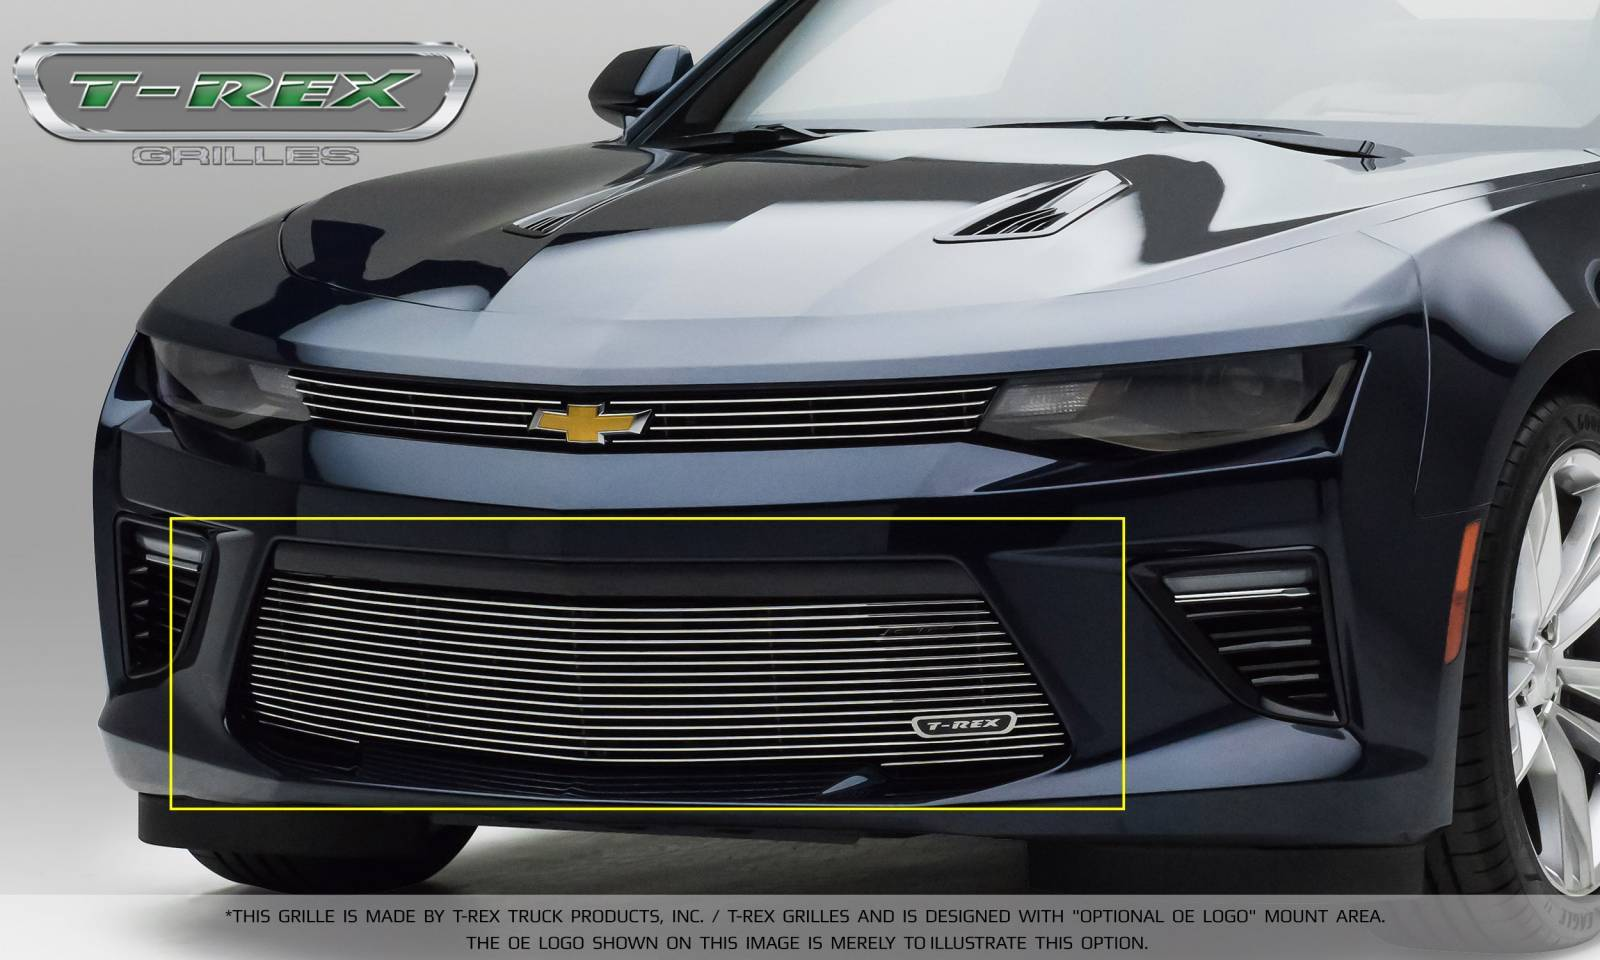 Chevrolet Camaro SS -  Billet Series - Bumper Grille Overlay with Polished Steel Finish - Pt # 25036